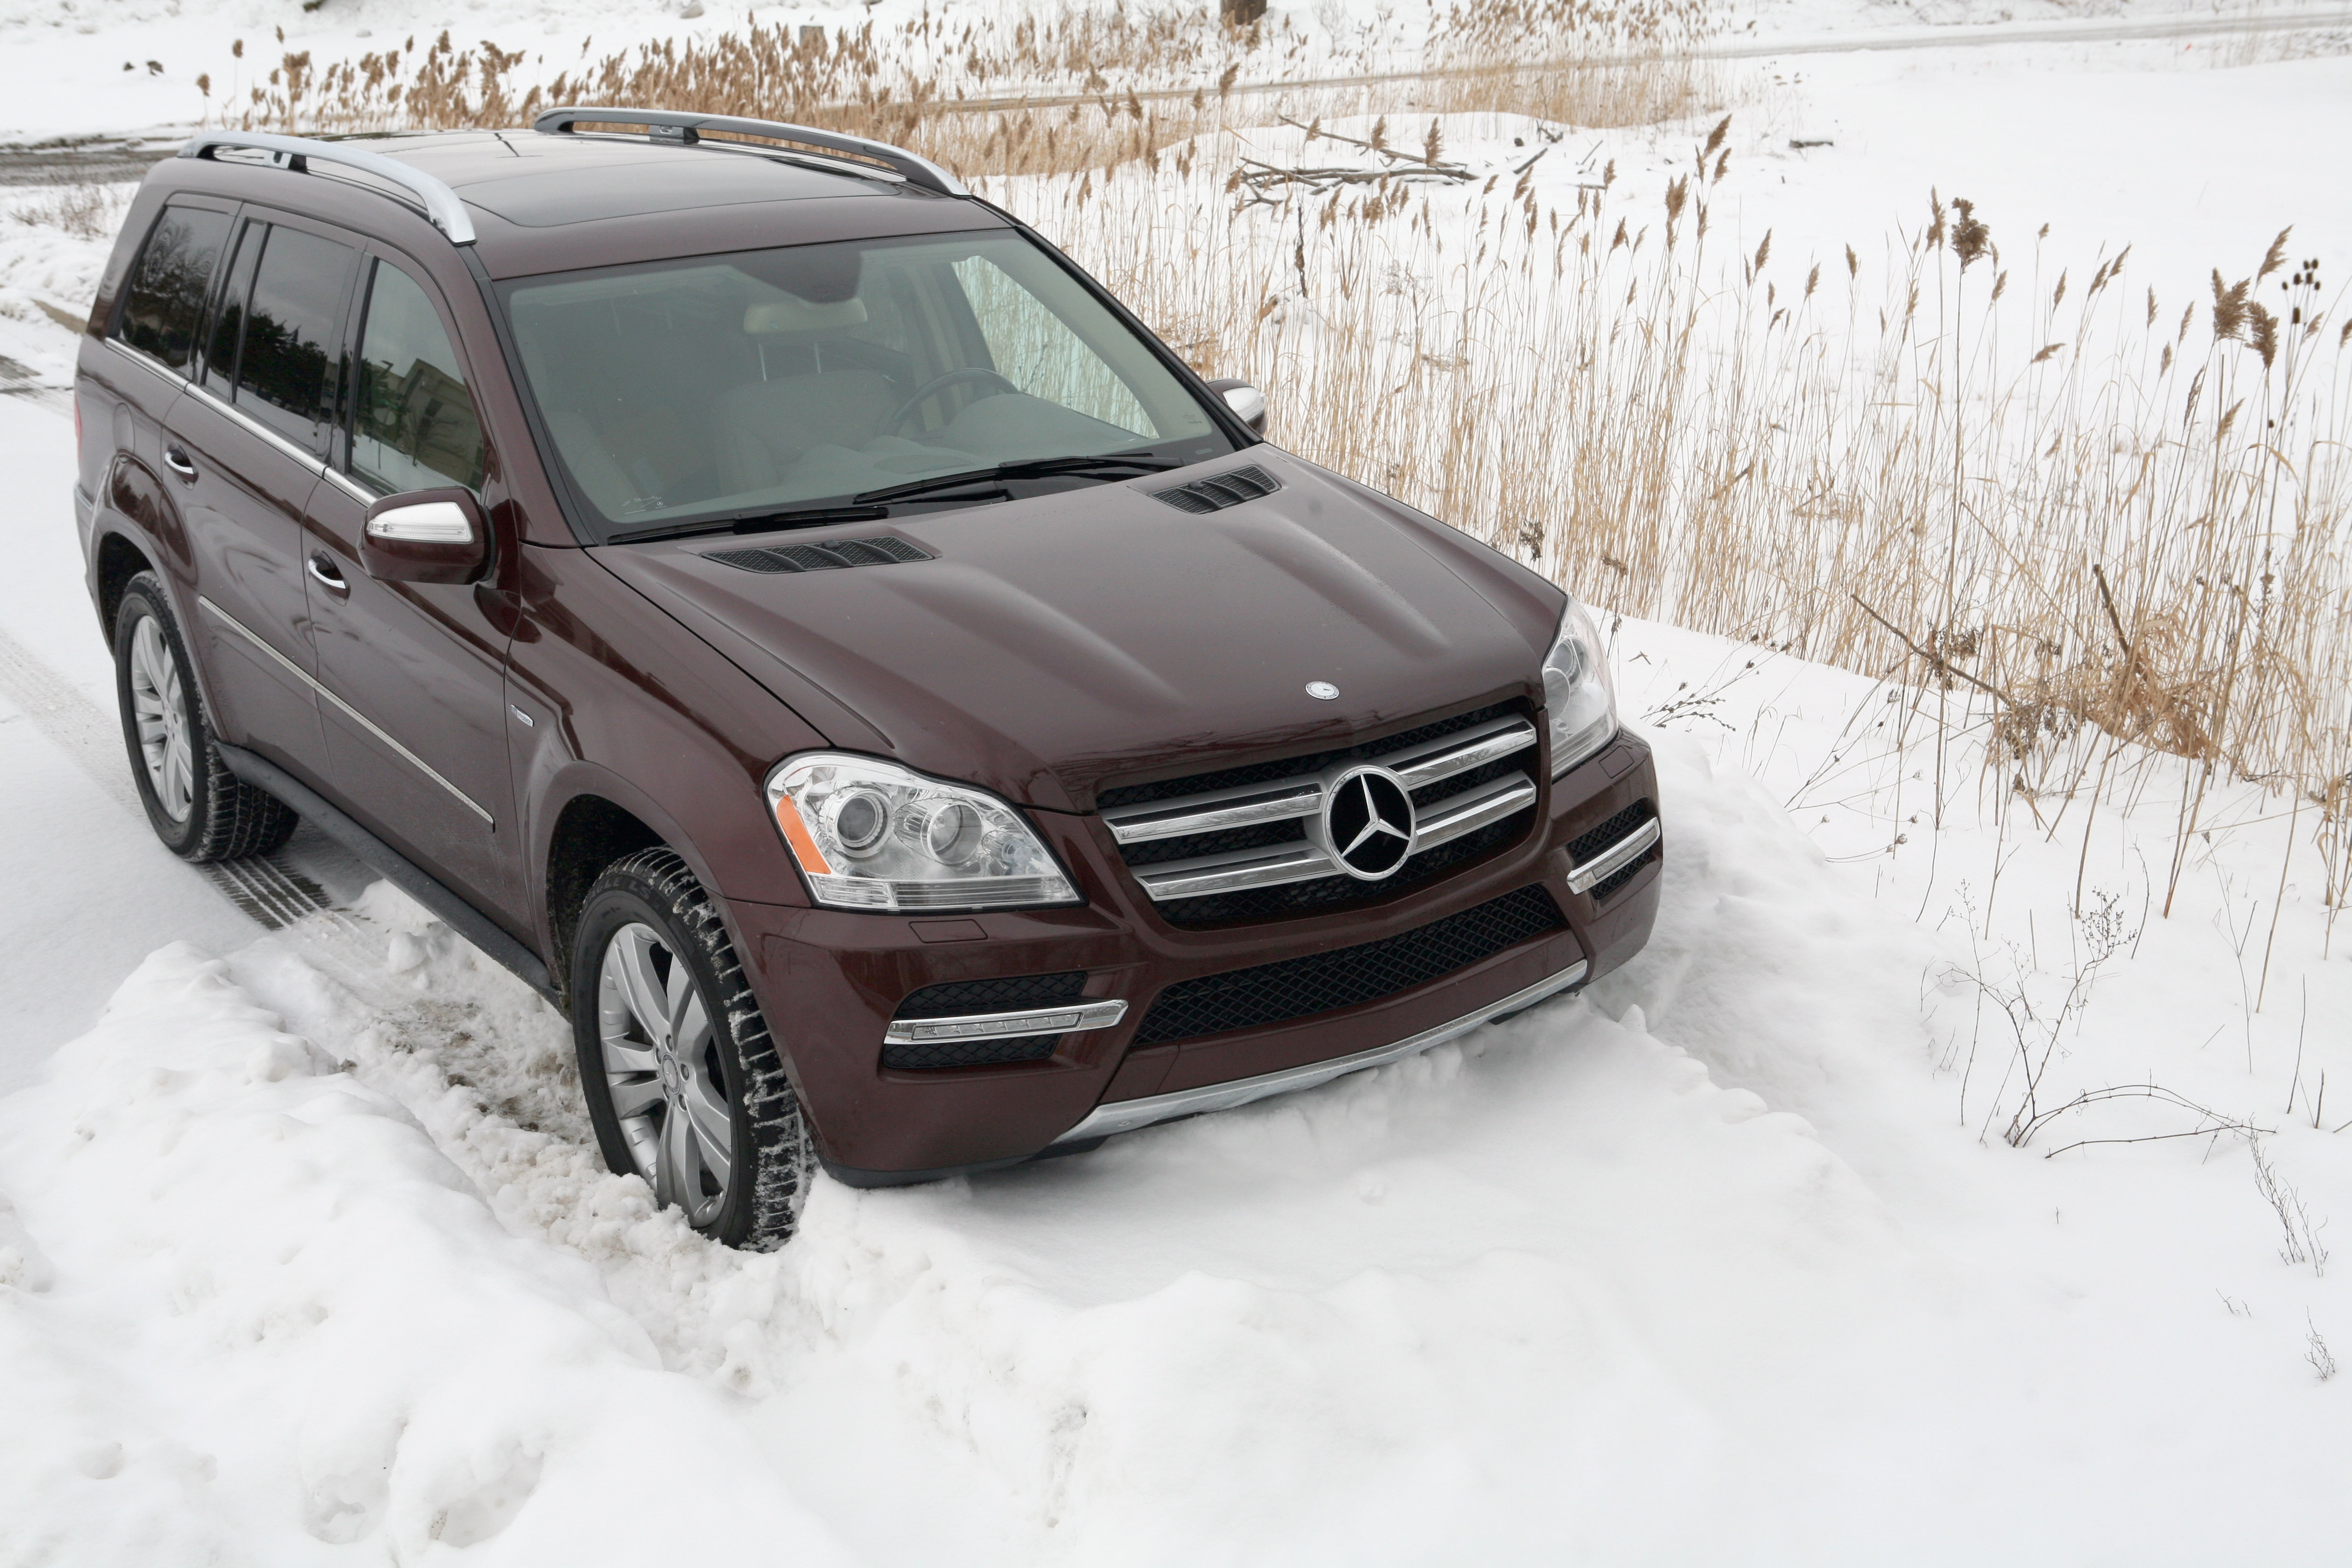 2010 Mercedes-Benz GL350 Bluetec - Mercedes Benz Fullsize